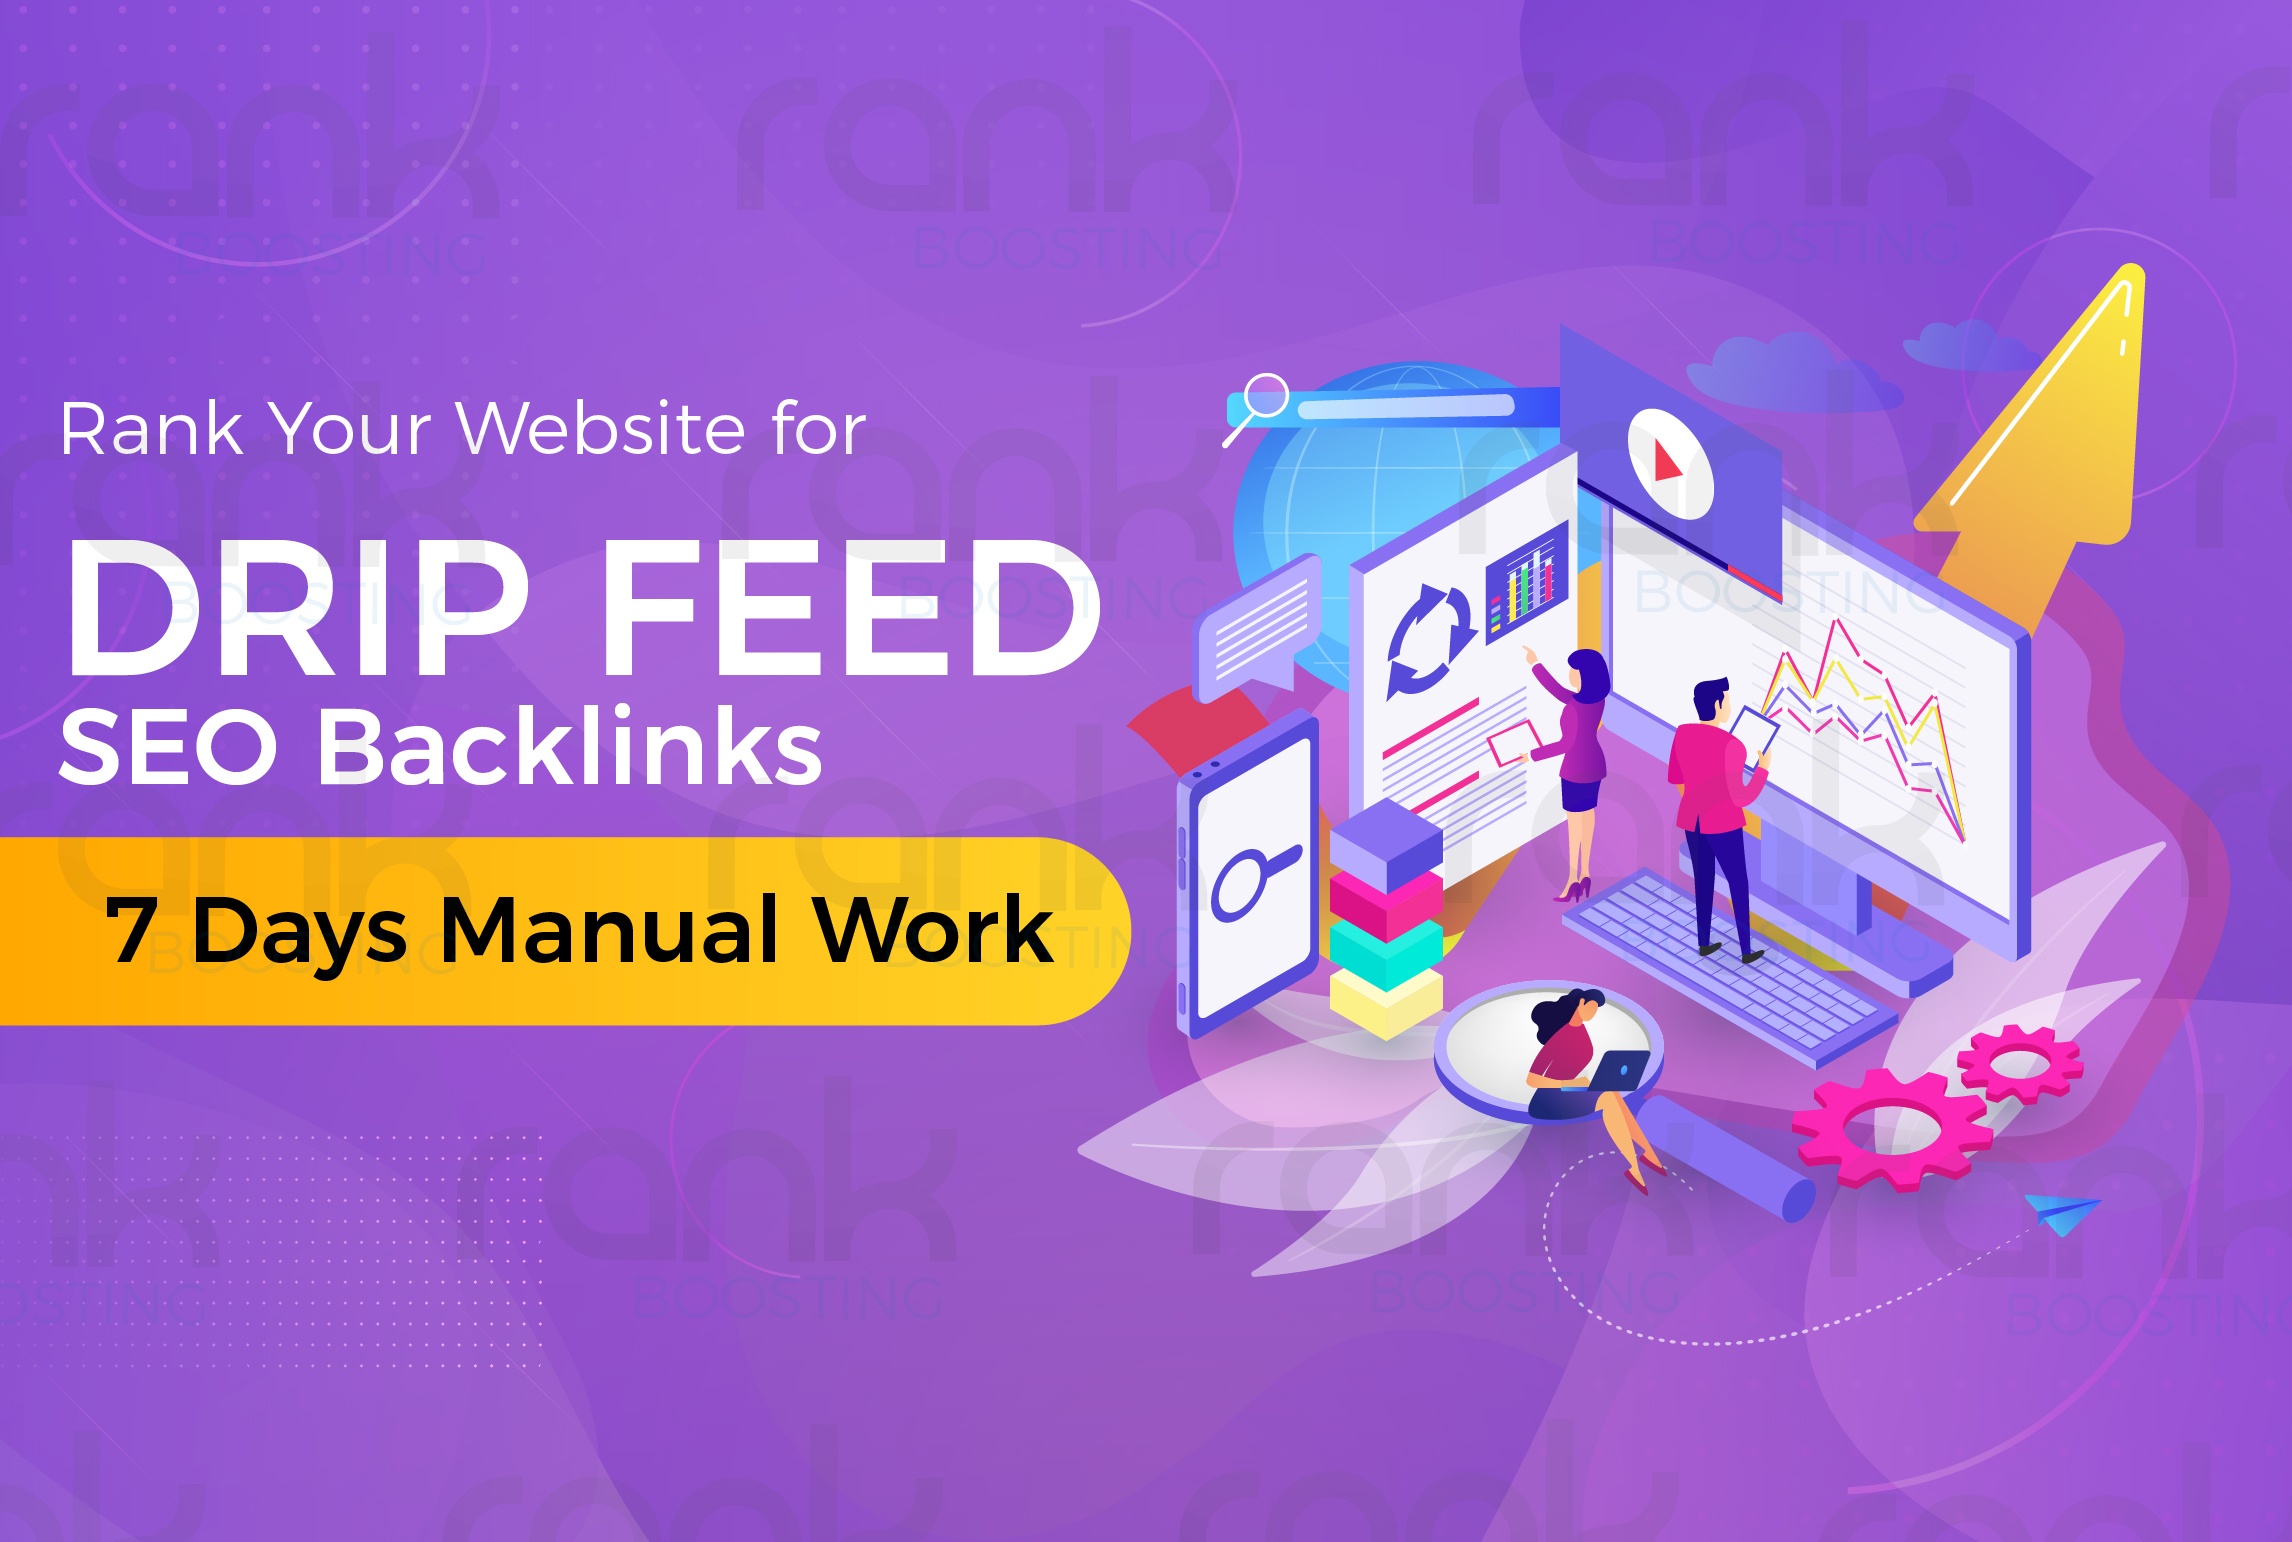 Rank Your Website for Dripfeed SEO Backlinks 7 Days Manual Work